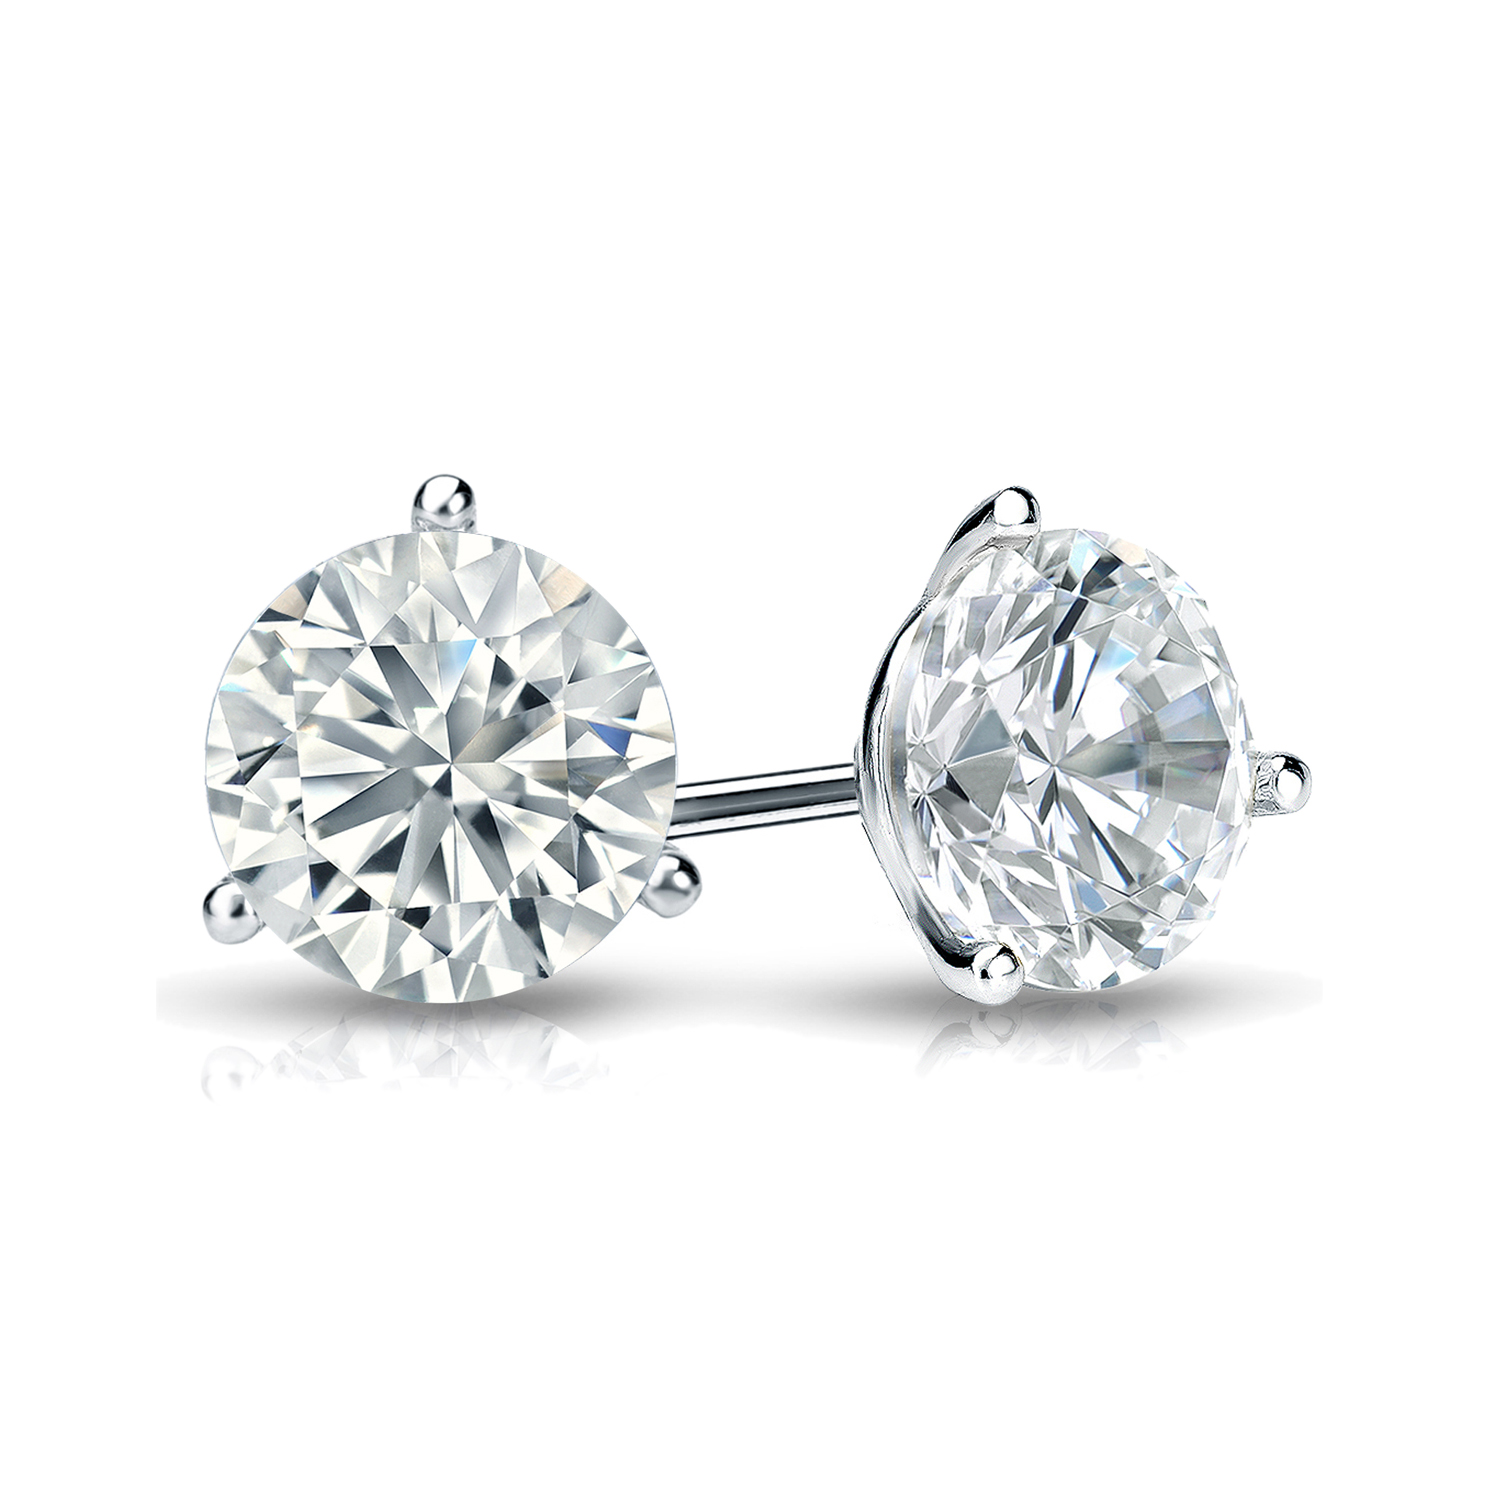 Certified 0.50 cttw Round Diamond Stud Earrings in 14k White Gold 3-Prong Martini (I-J, I1)